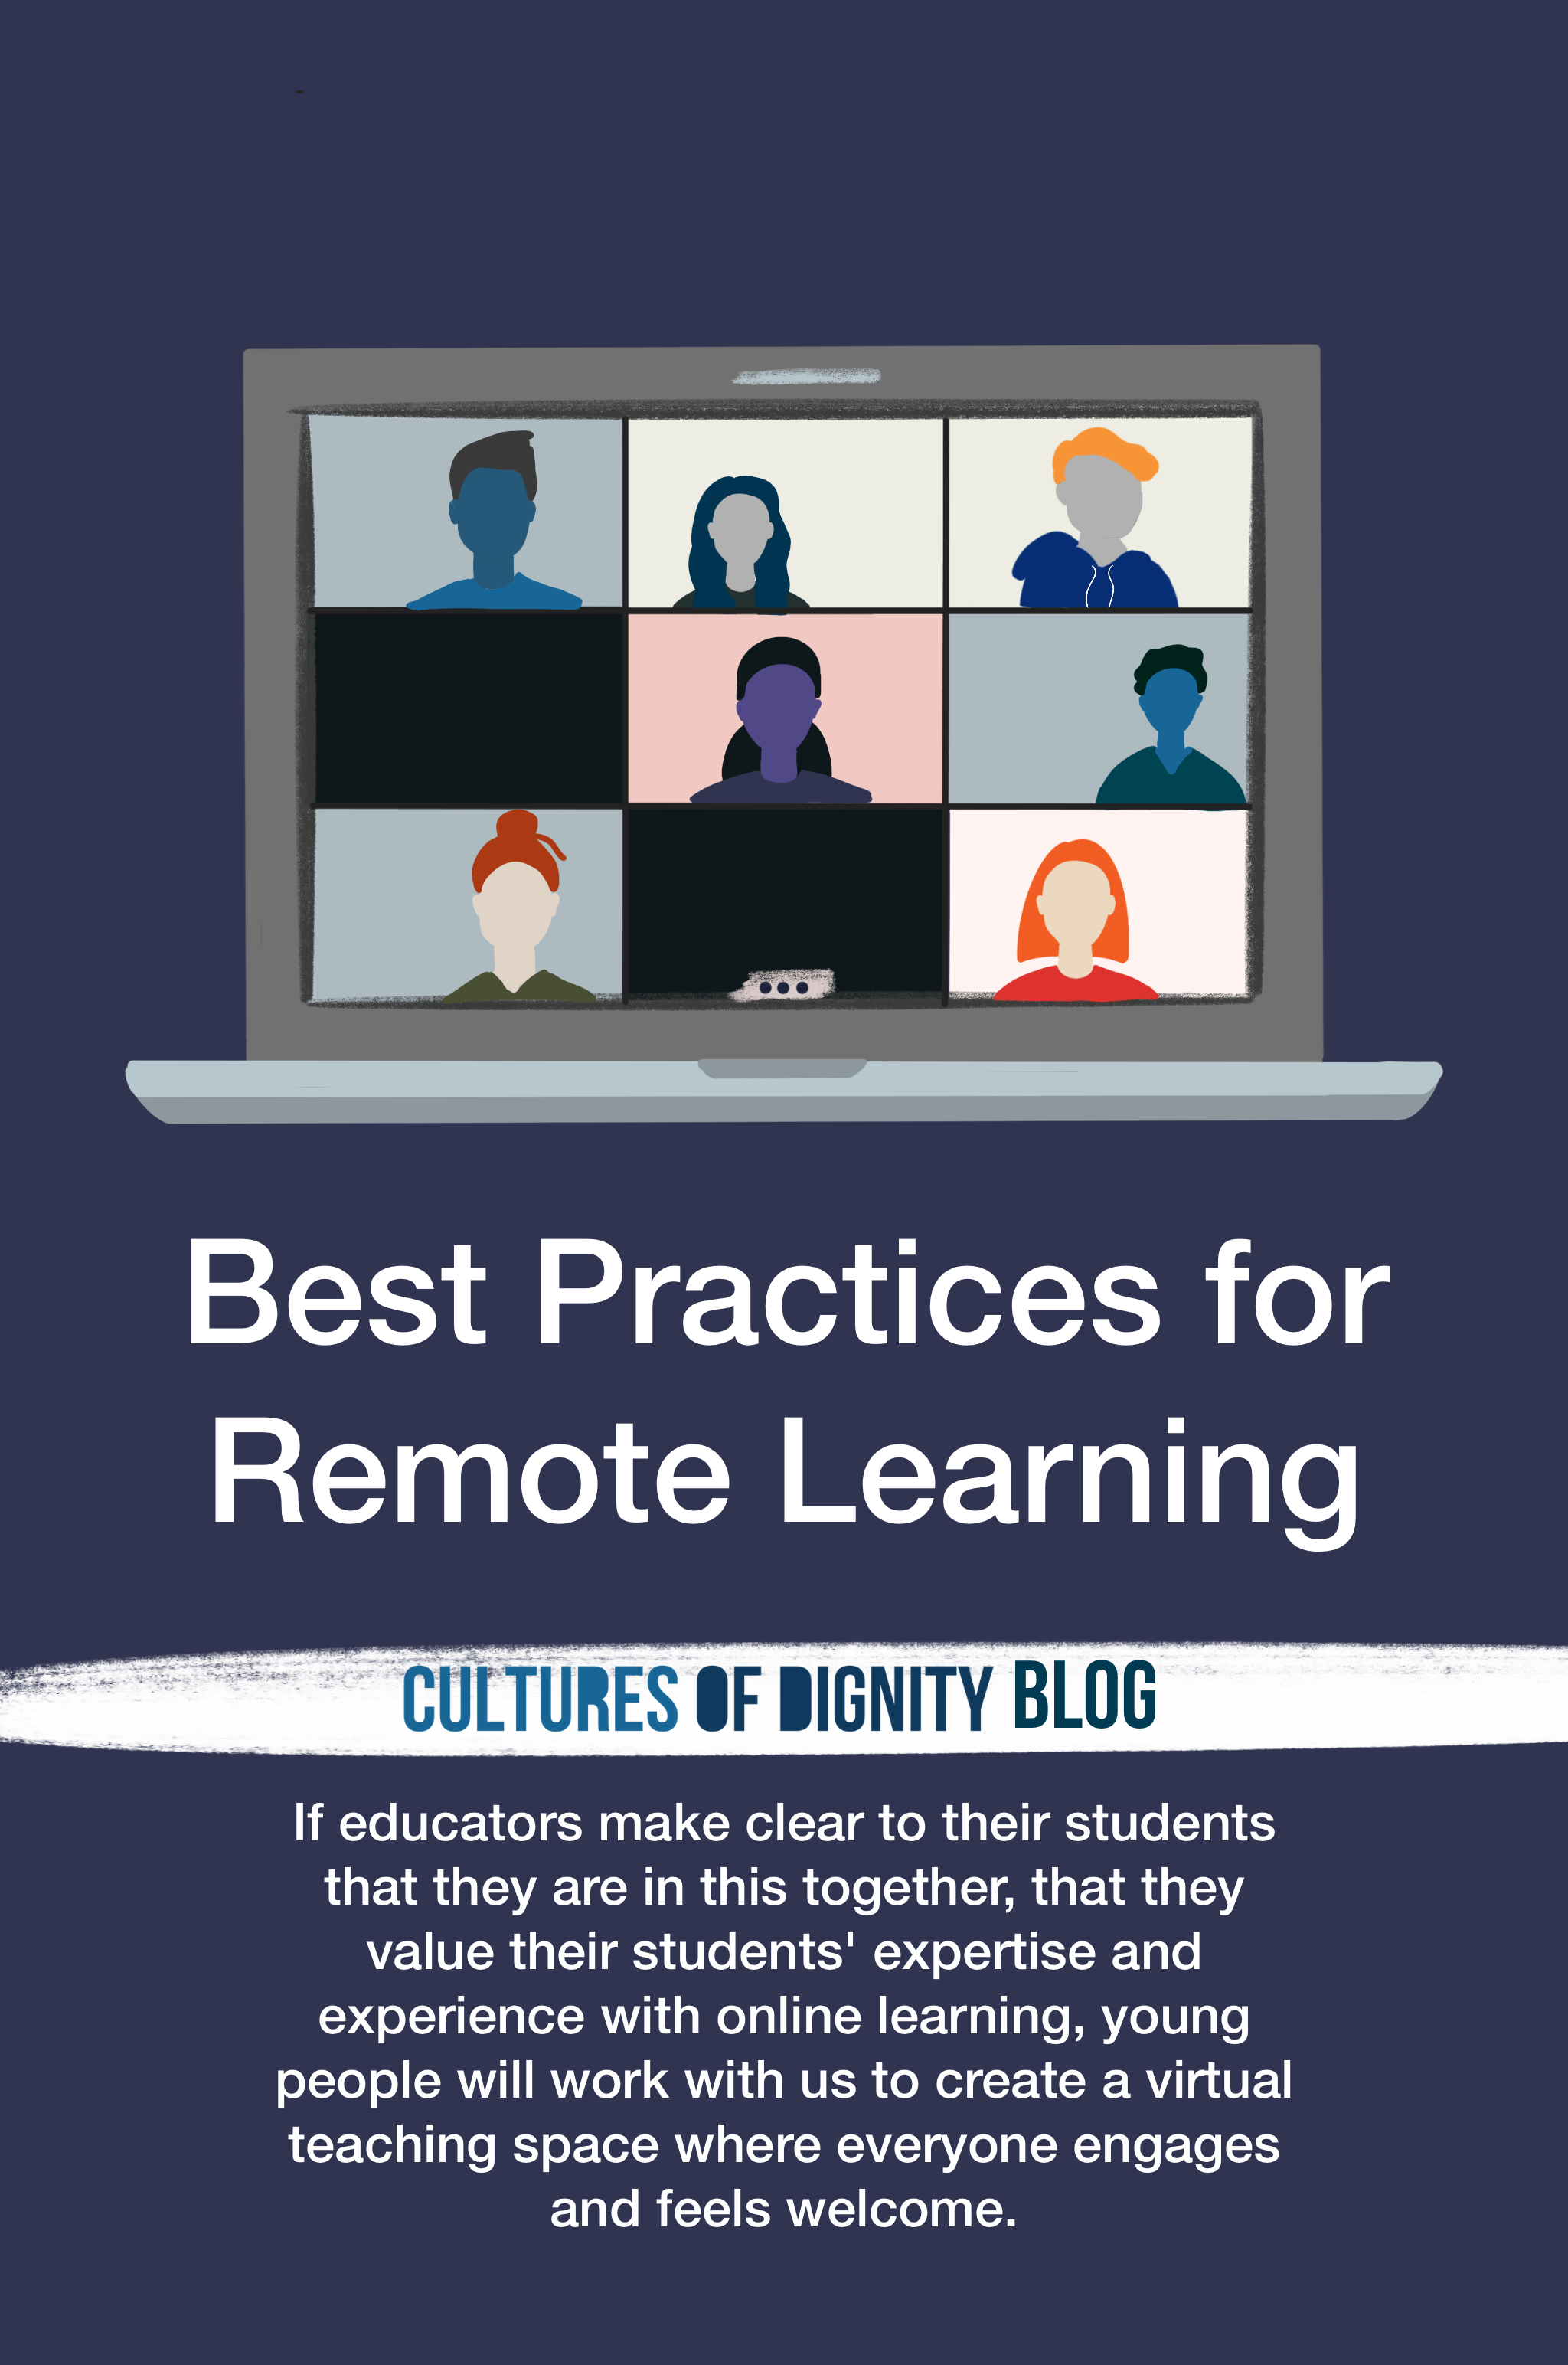 Best Practices for Remote Learning